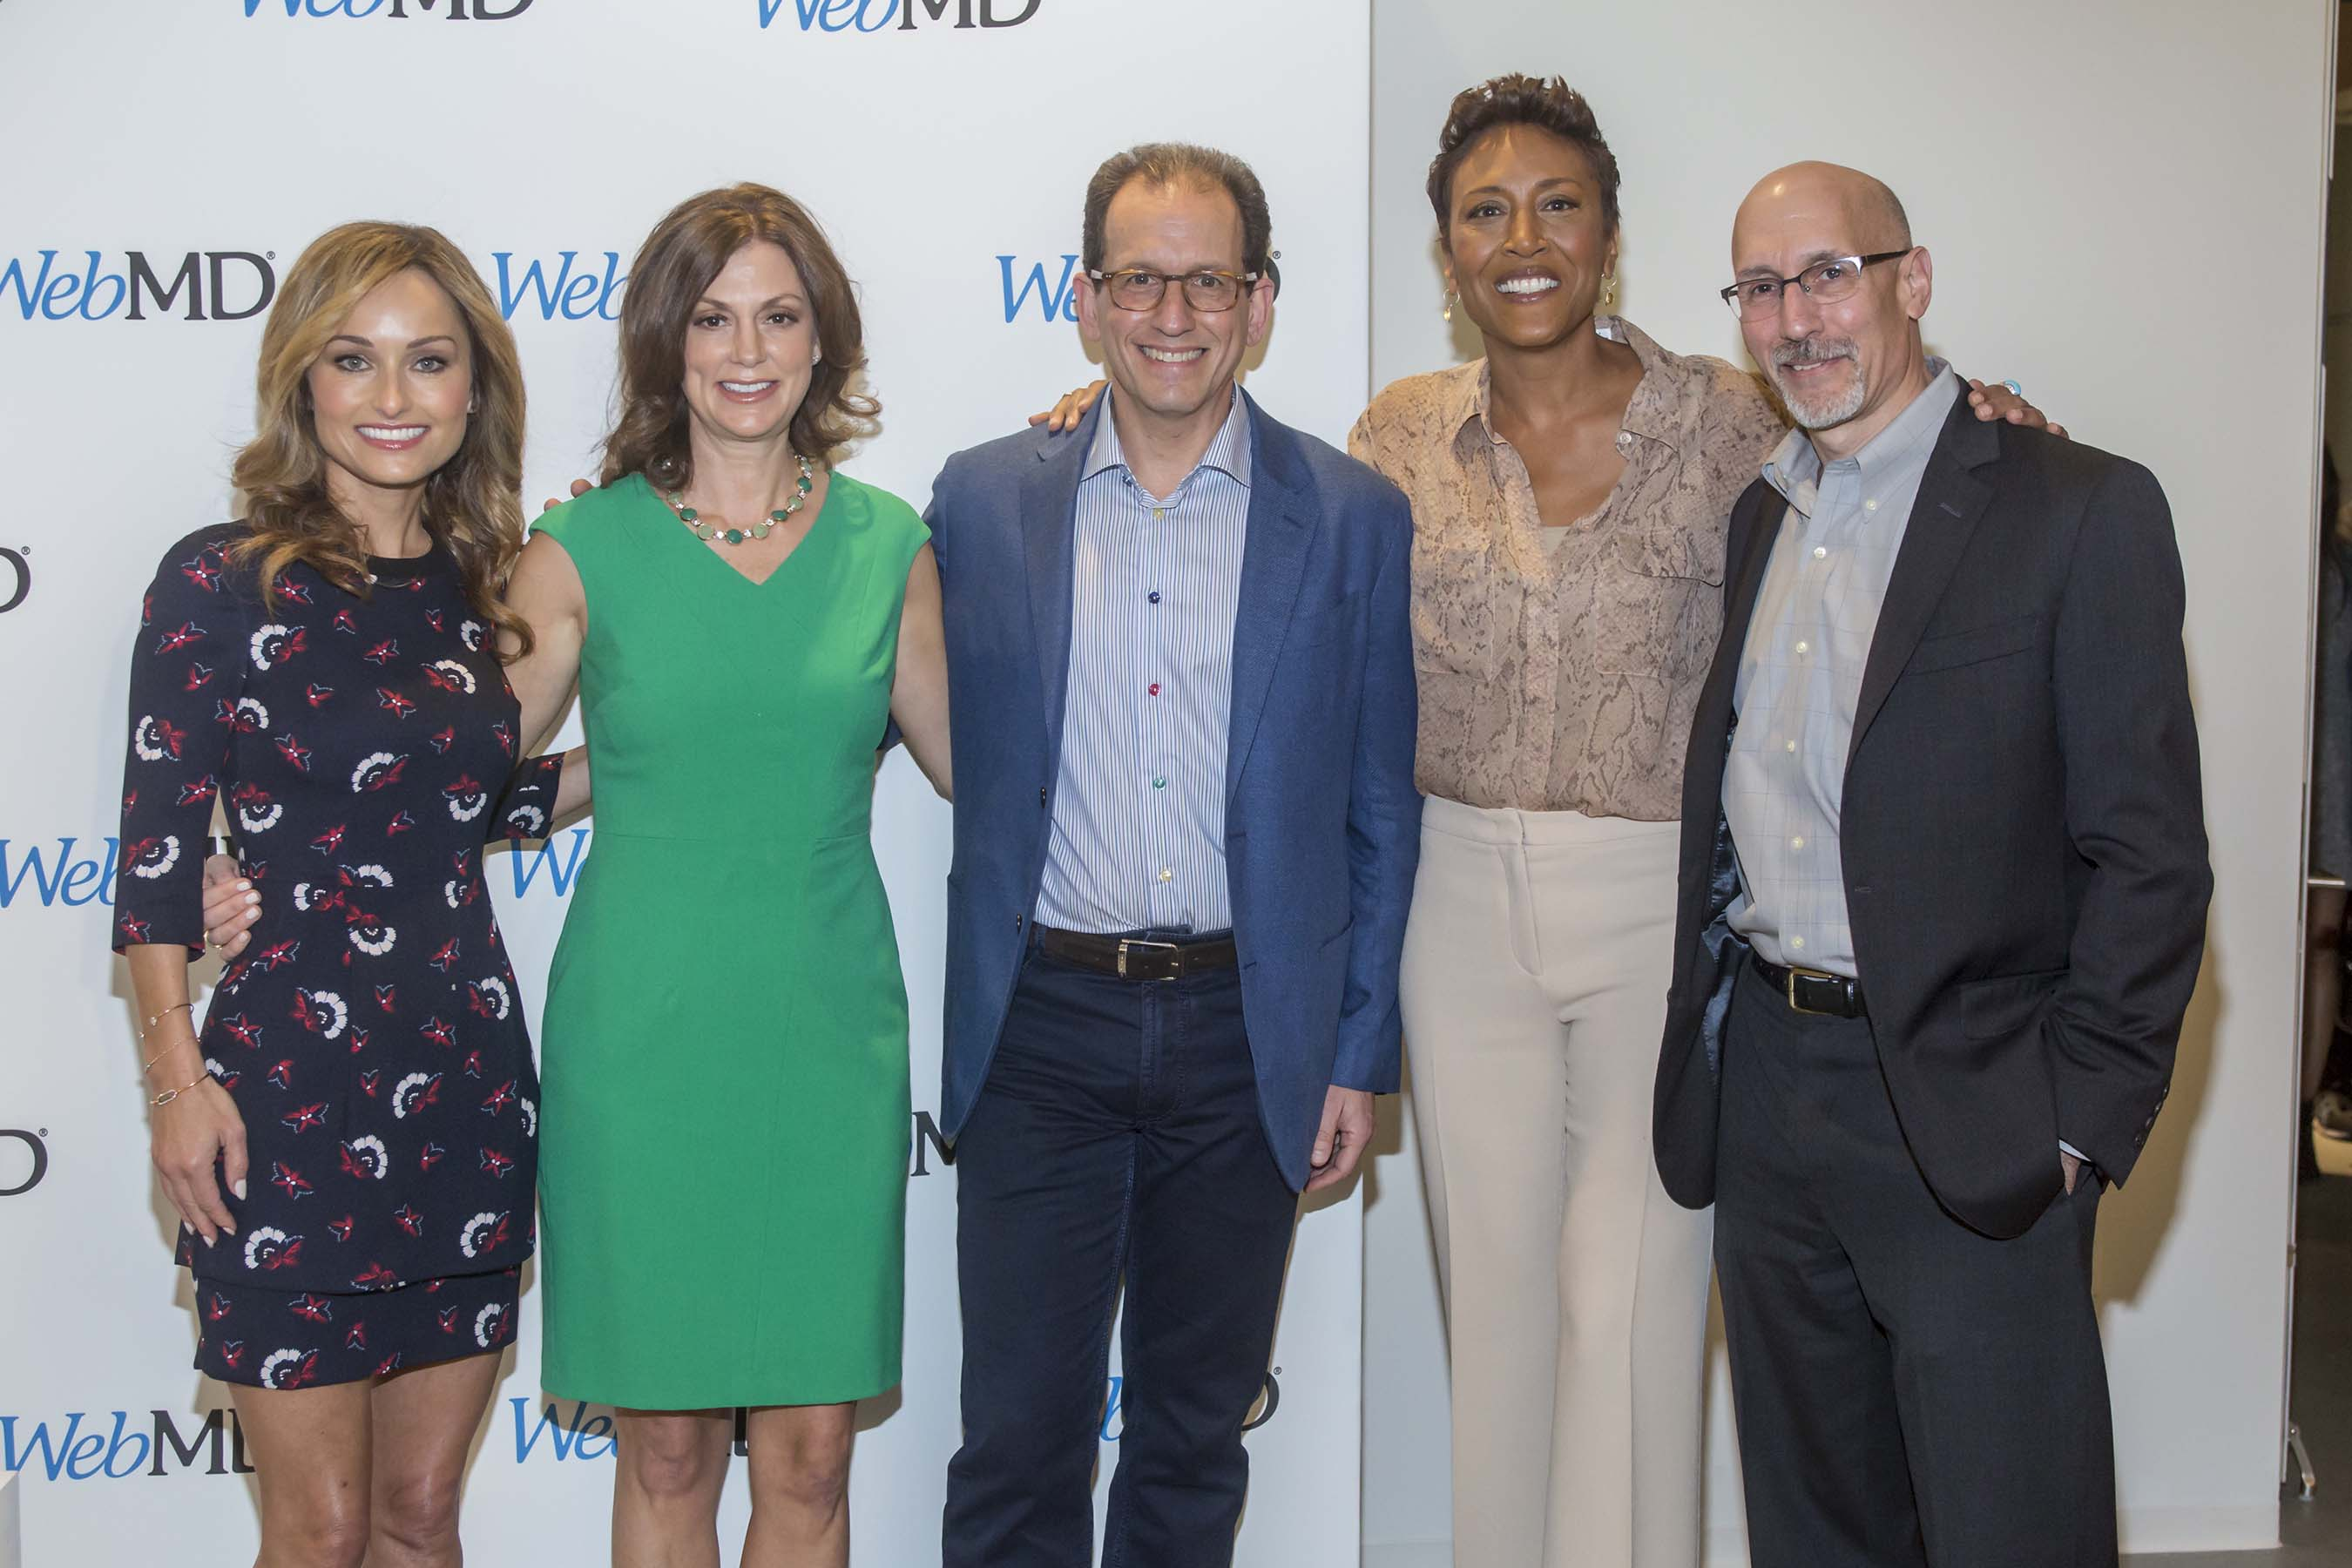 Giada De Laurentiis, WebMD Editor-in-Chief Kristy Hammam, WebMD CEO David Schlanger, Robin Roberts and WebMD President Steve Zatz at WebMD's first-ever Digital Content NewFront presentation in New York City.